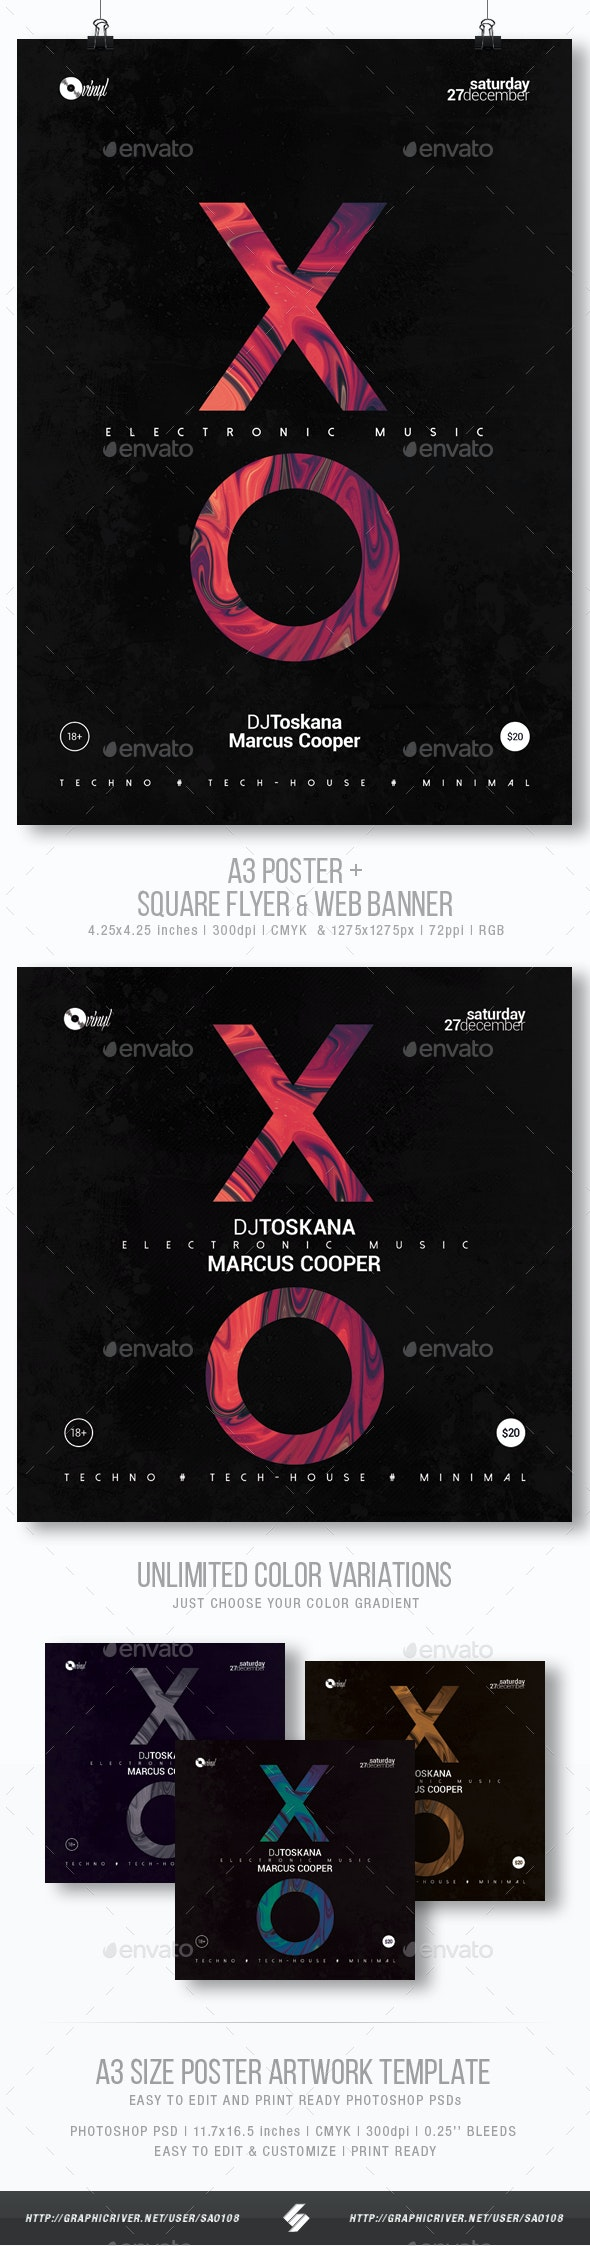 Electronic Music - Minimal Party Flyer / Poster Template A3 - Clubs & Parties Events